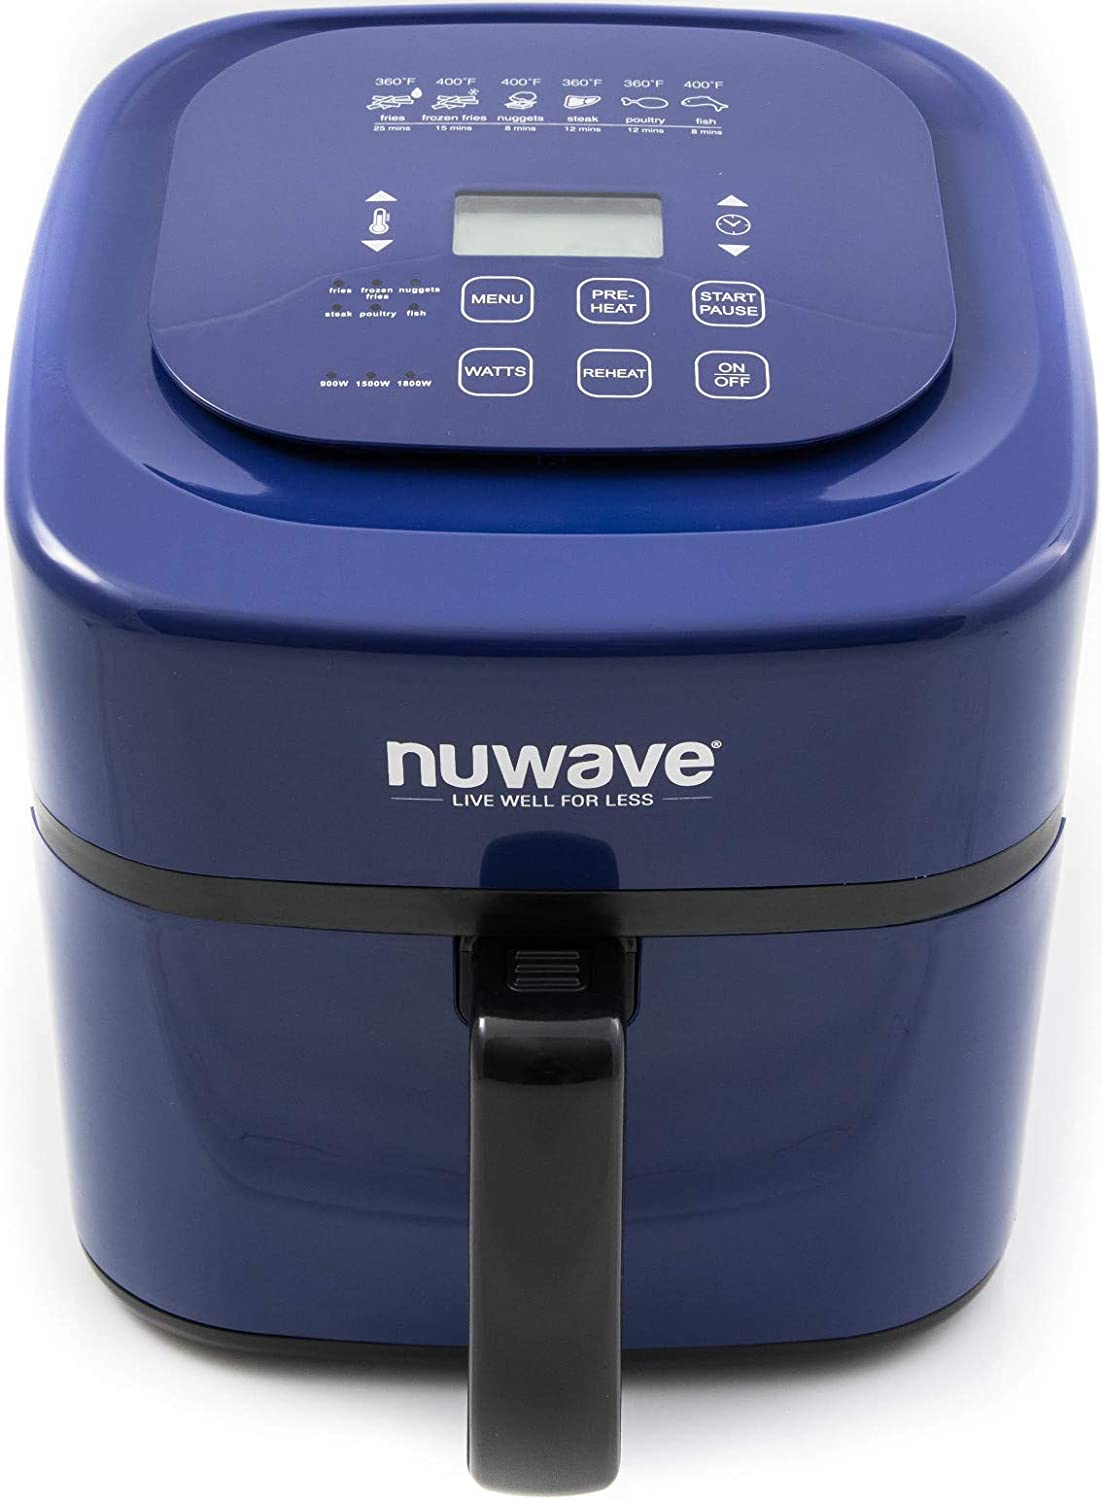 Nuwave 6 Qt. Brio Air Fryer- Blue